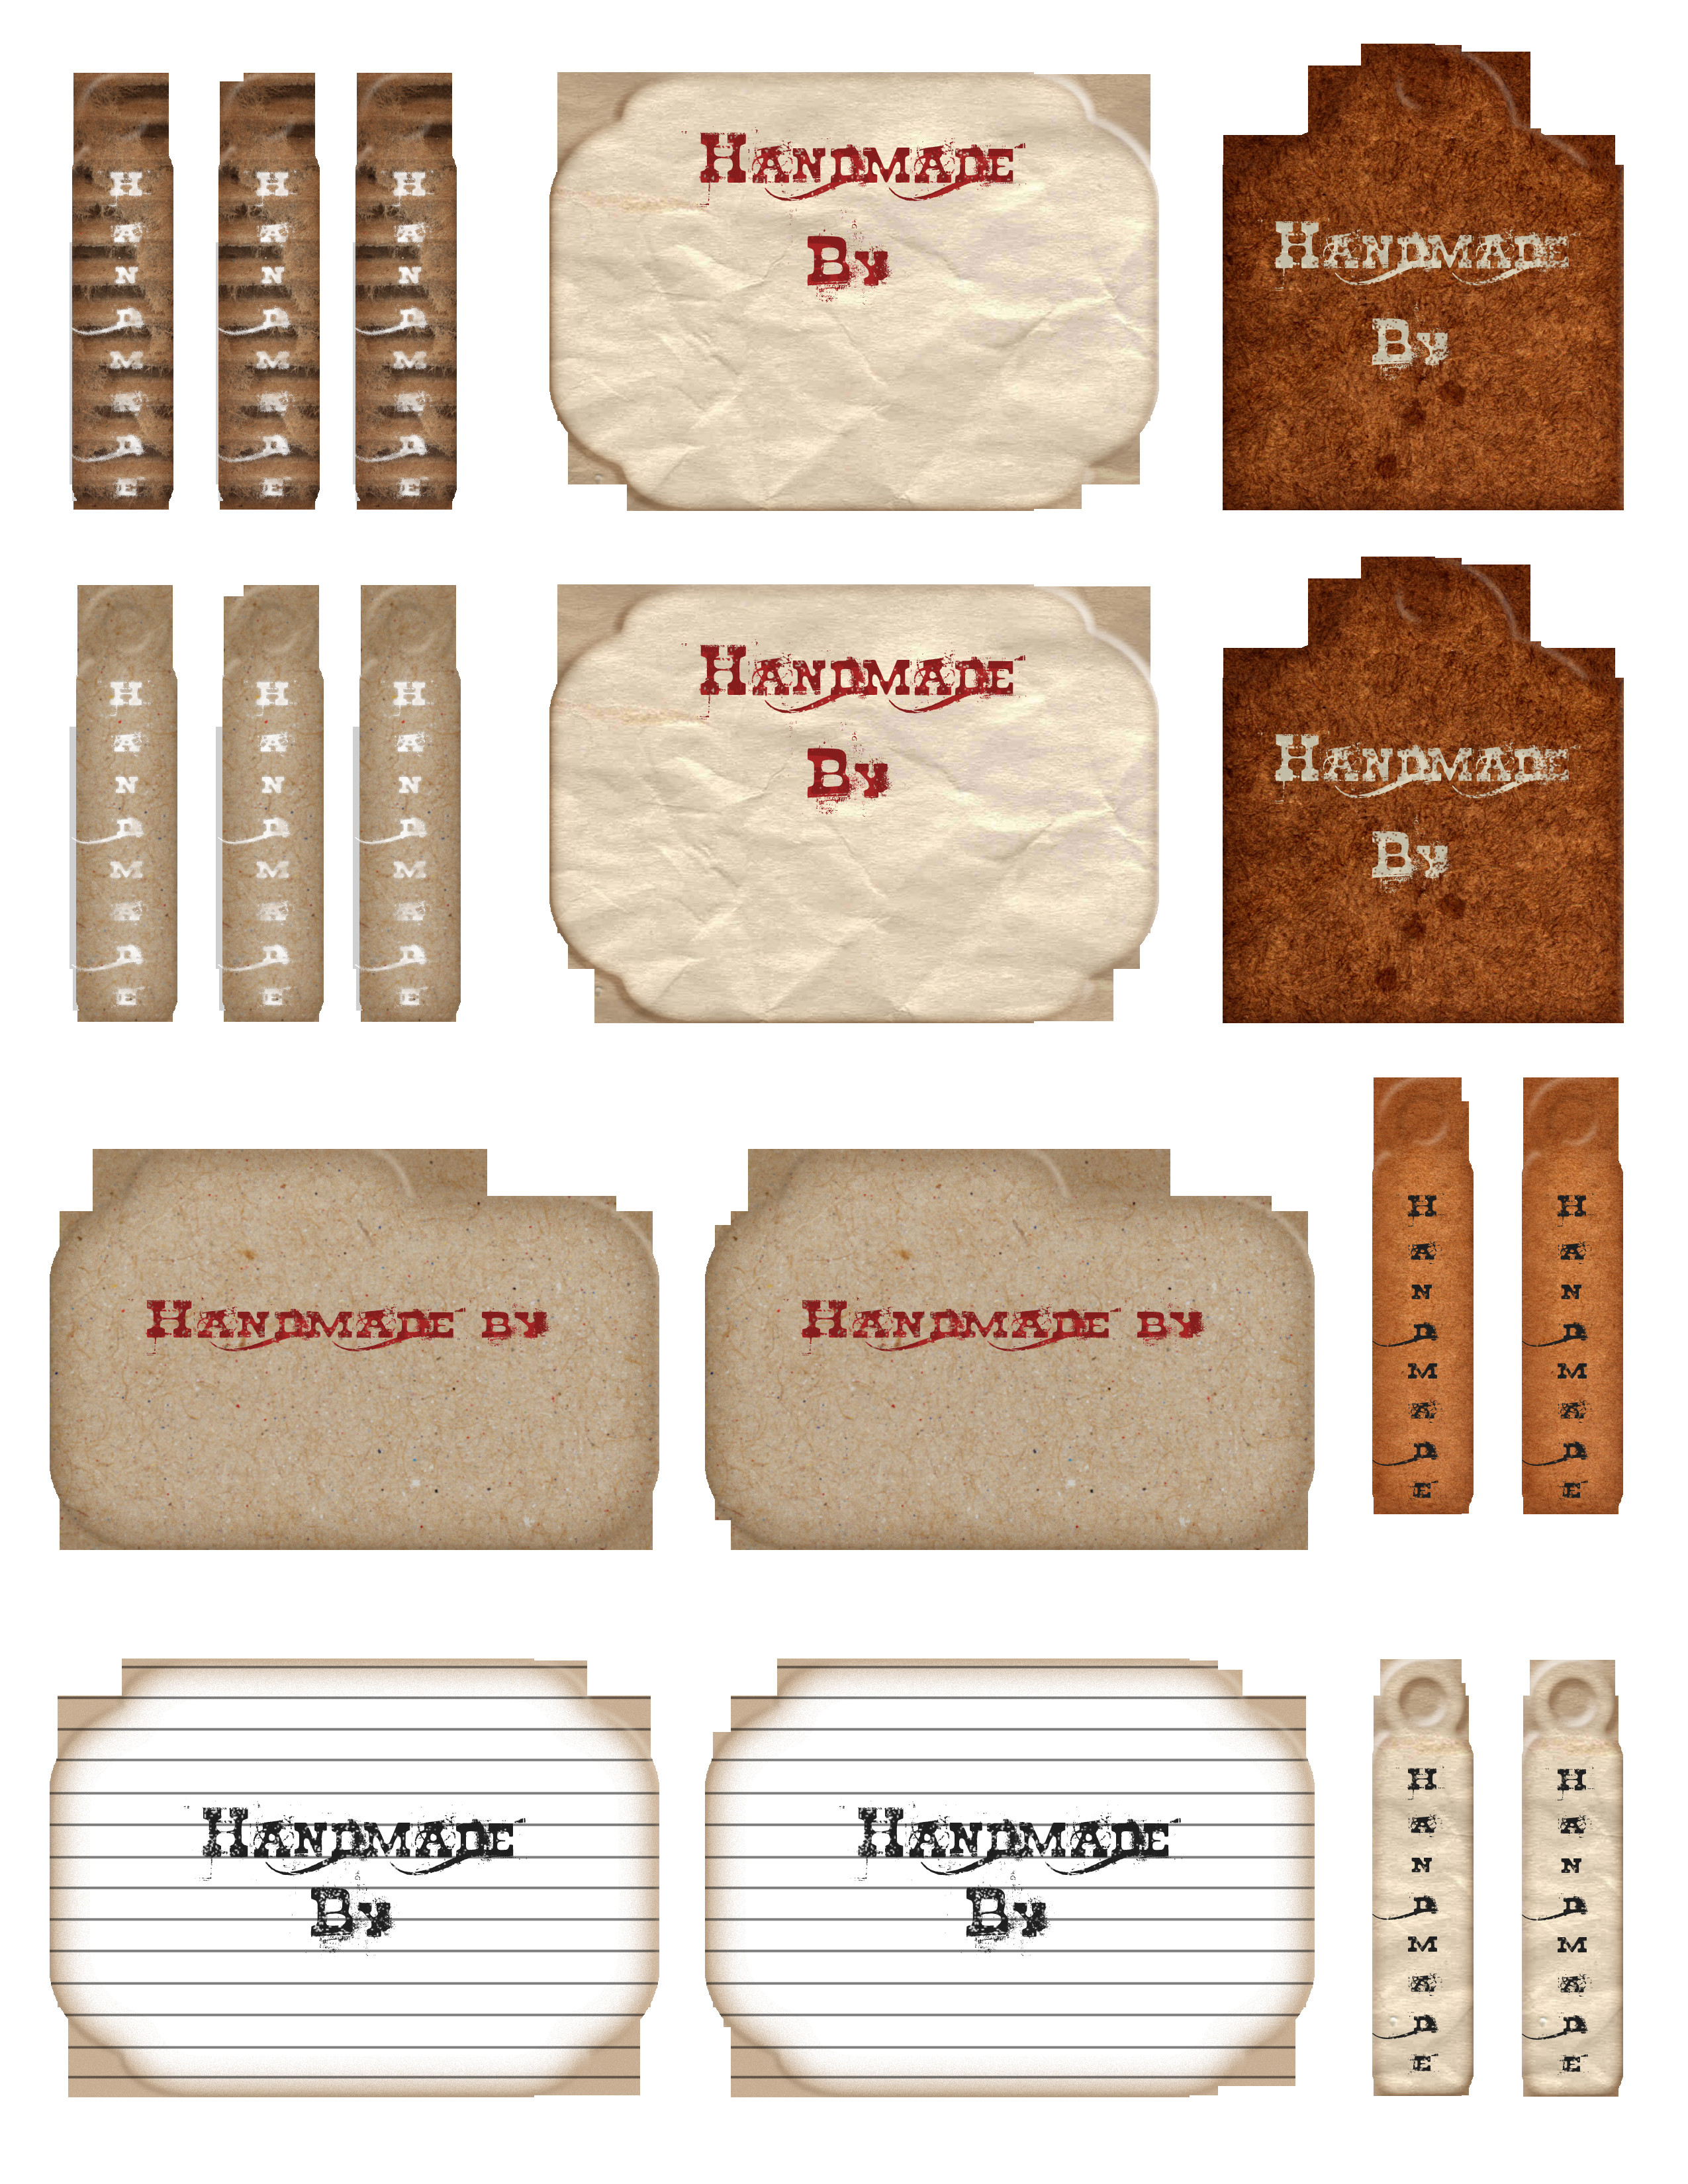 Handmade Labels for Crochet Awesome 7 Best Of Printable Handmade Labels Free Of New 49 Photos Handmade Labels for Crochet